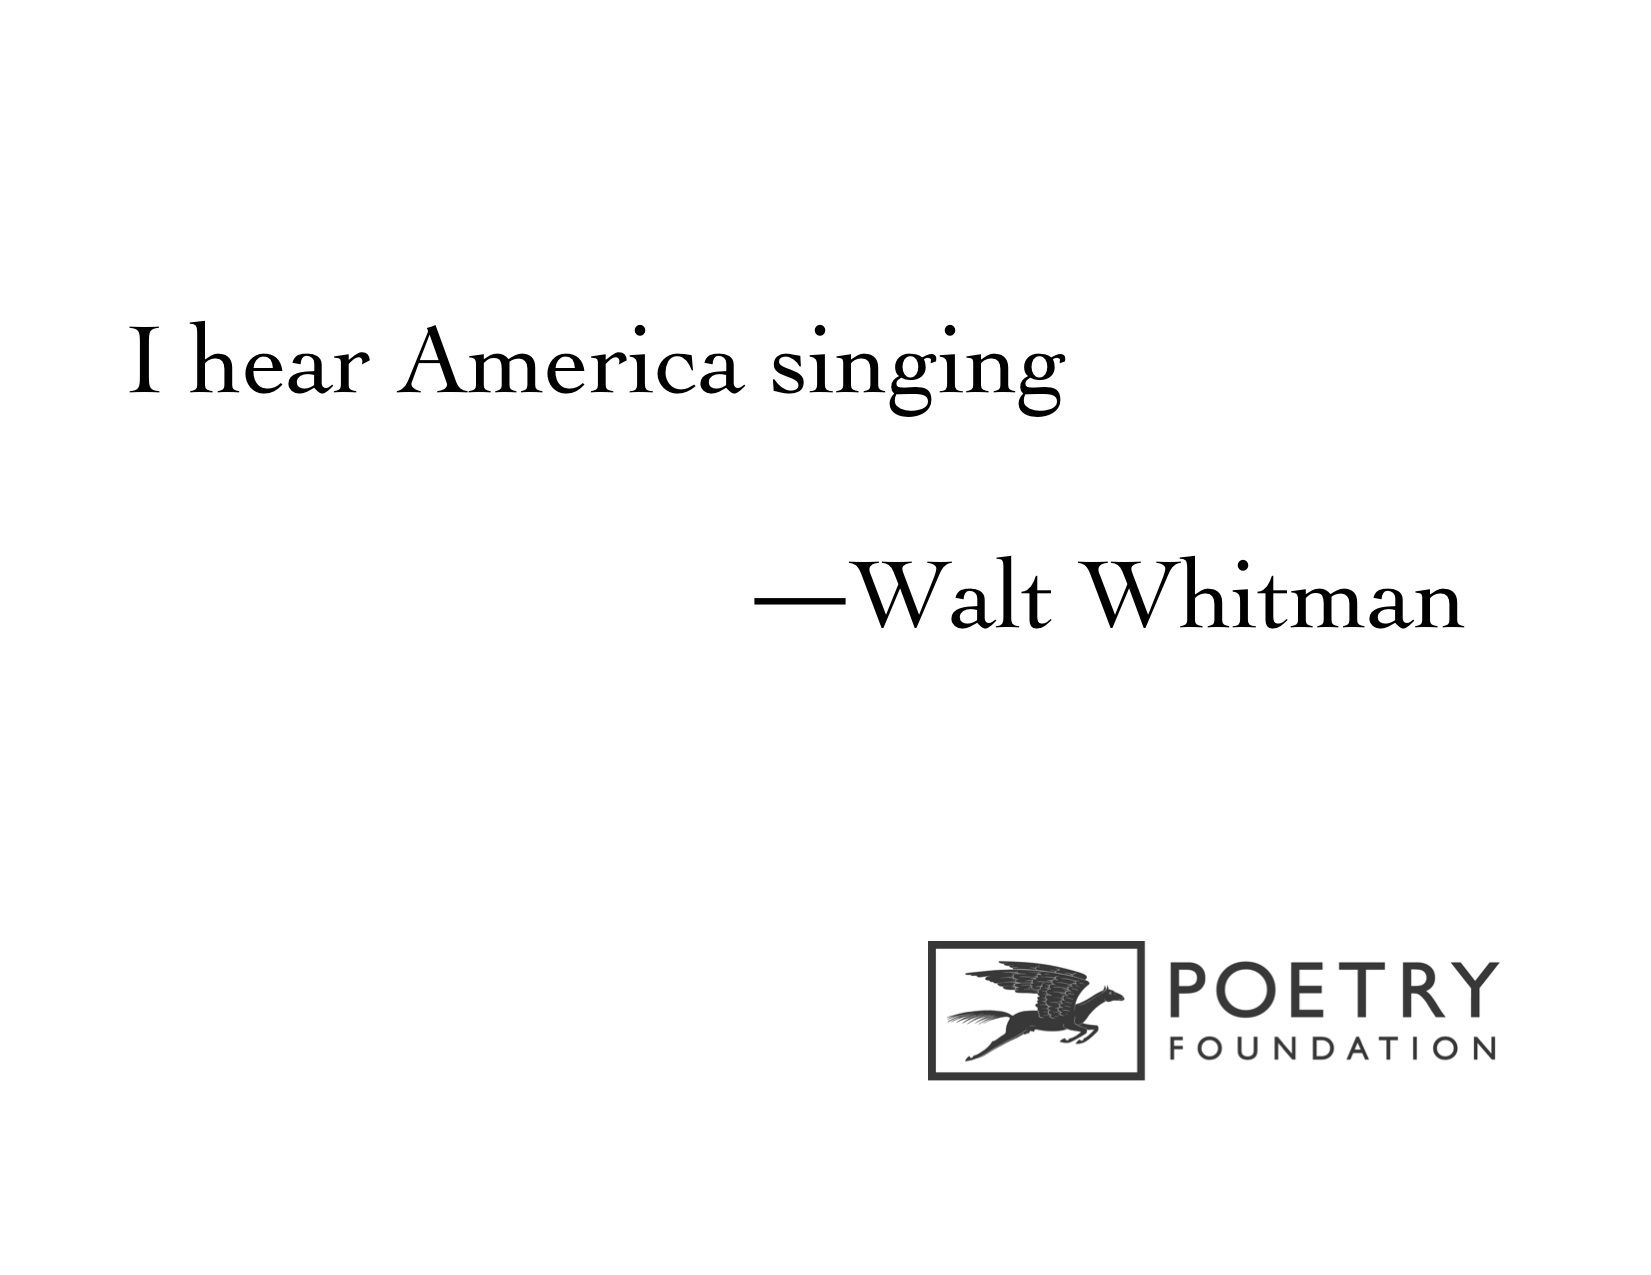 what type of poem is i hear america singing